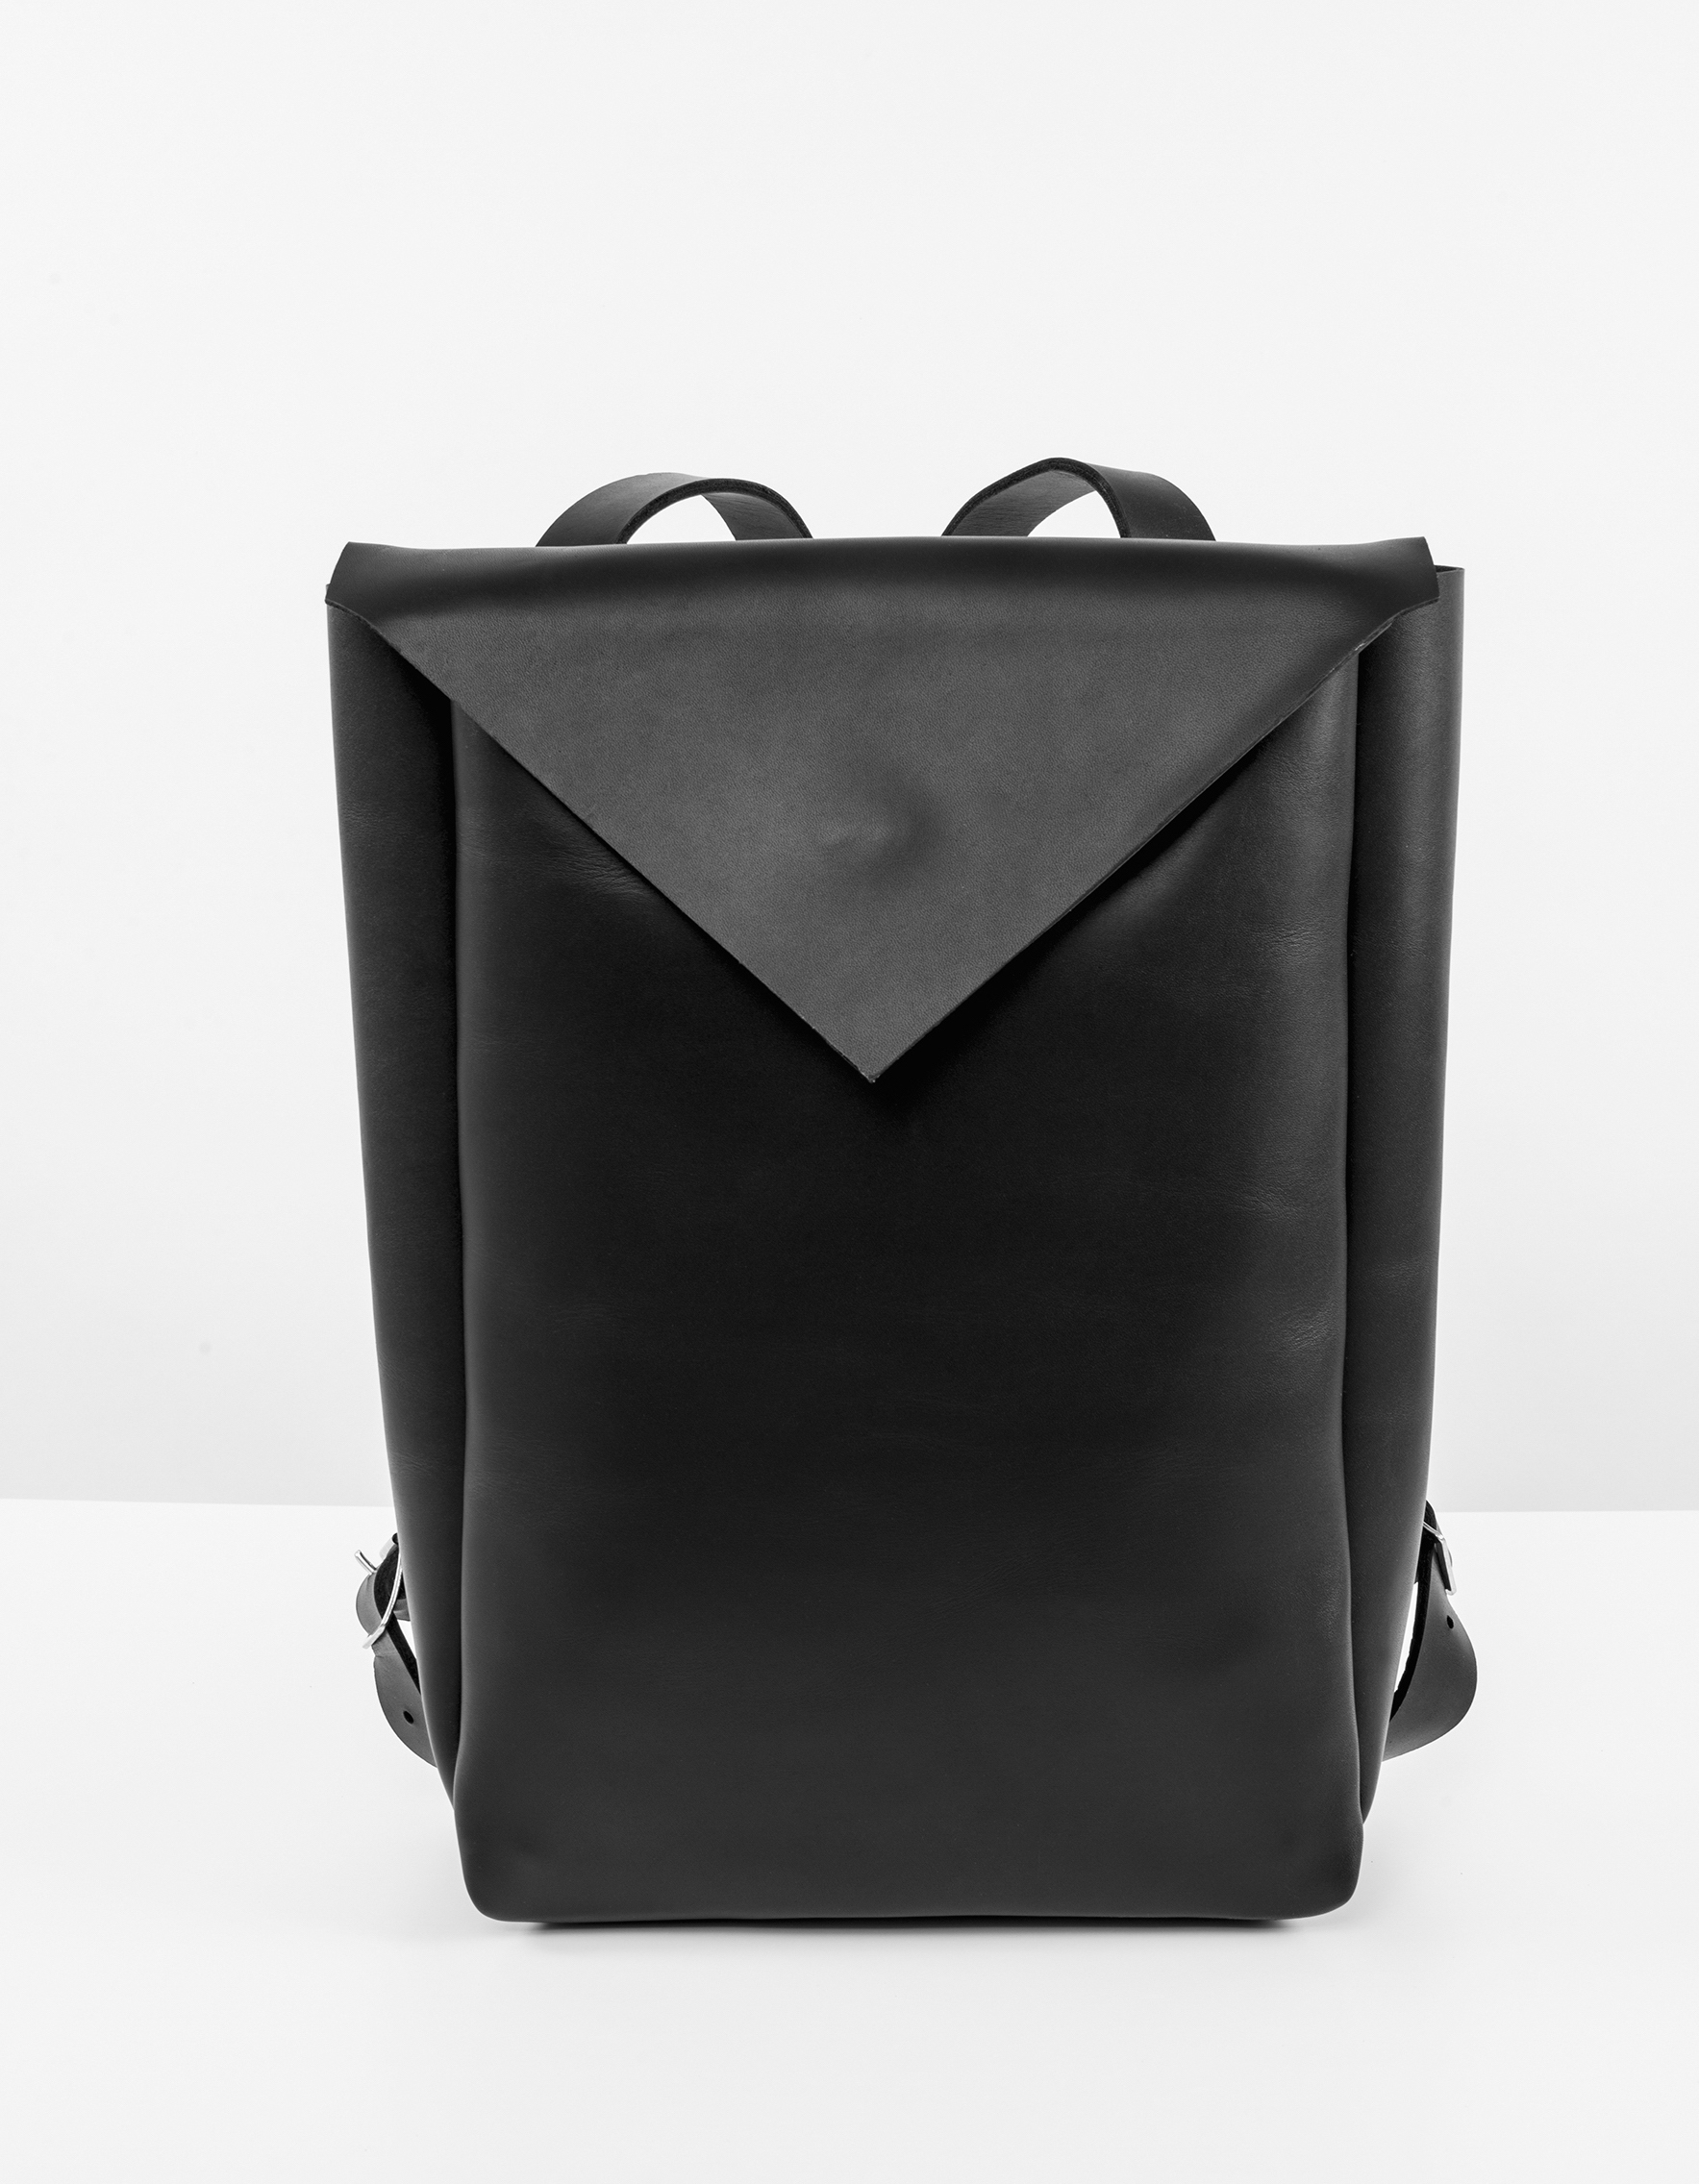 water resistant leather city backpack erikahoc. Black Bedroom Furniture Sets. Home Design Ideas